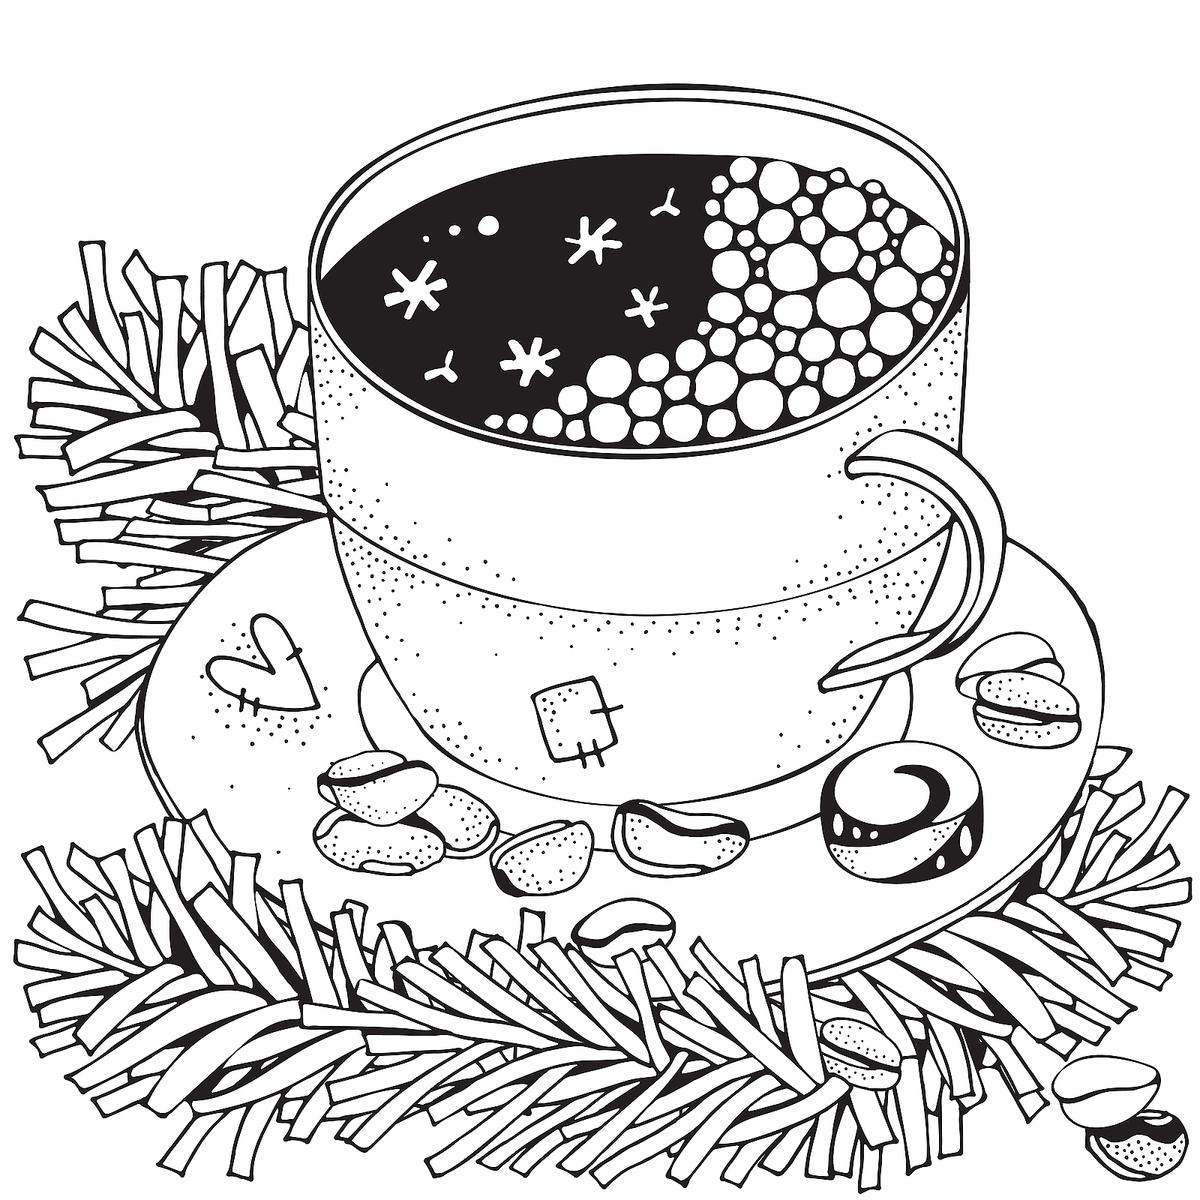 Winter Puzzle & Coloring Pages: Printable Winter-Themed